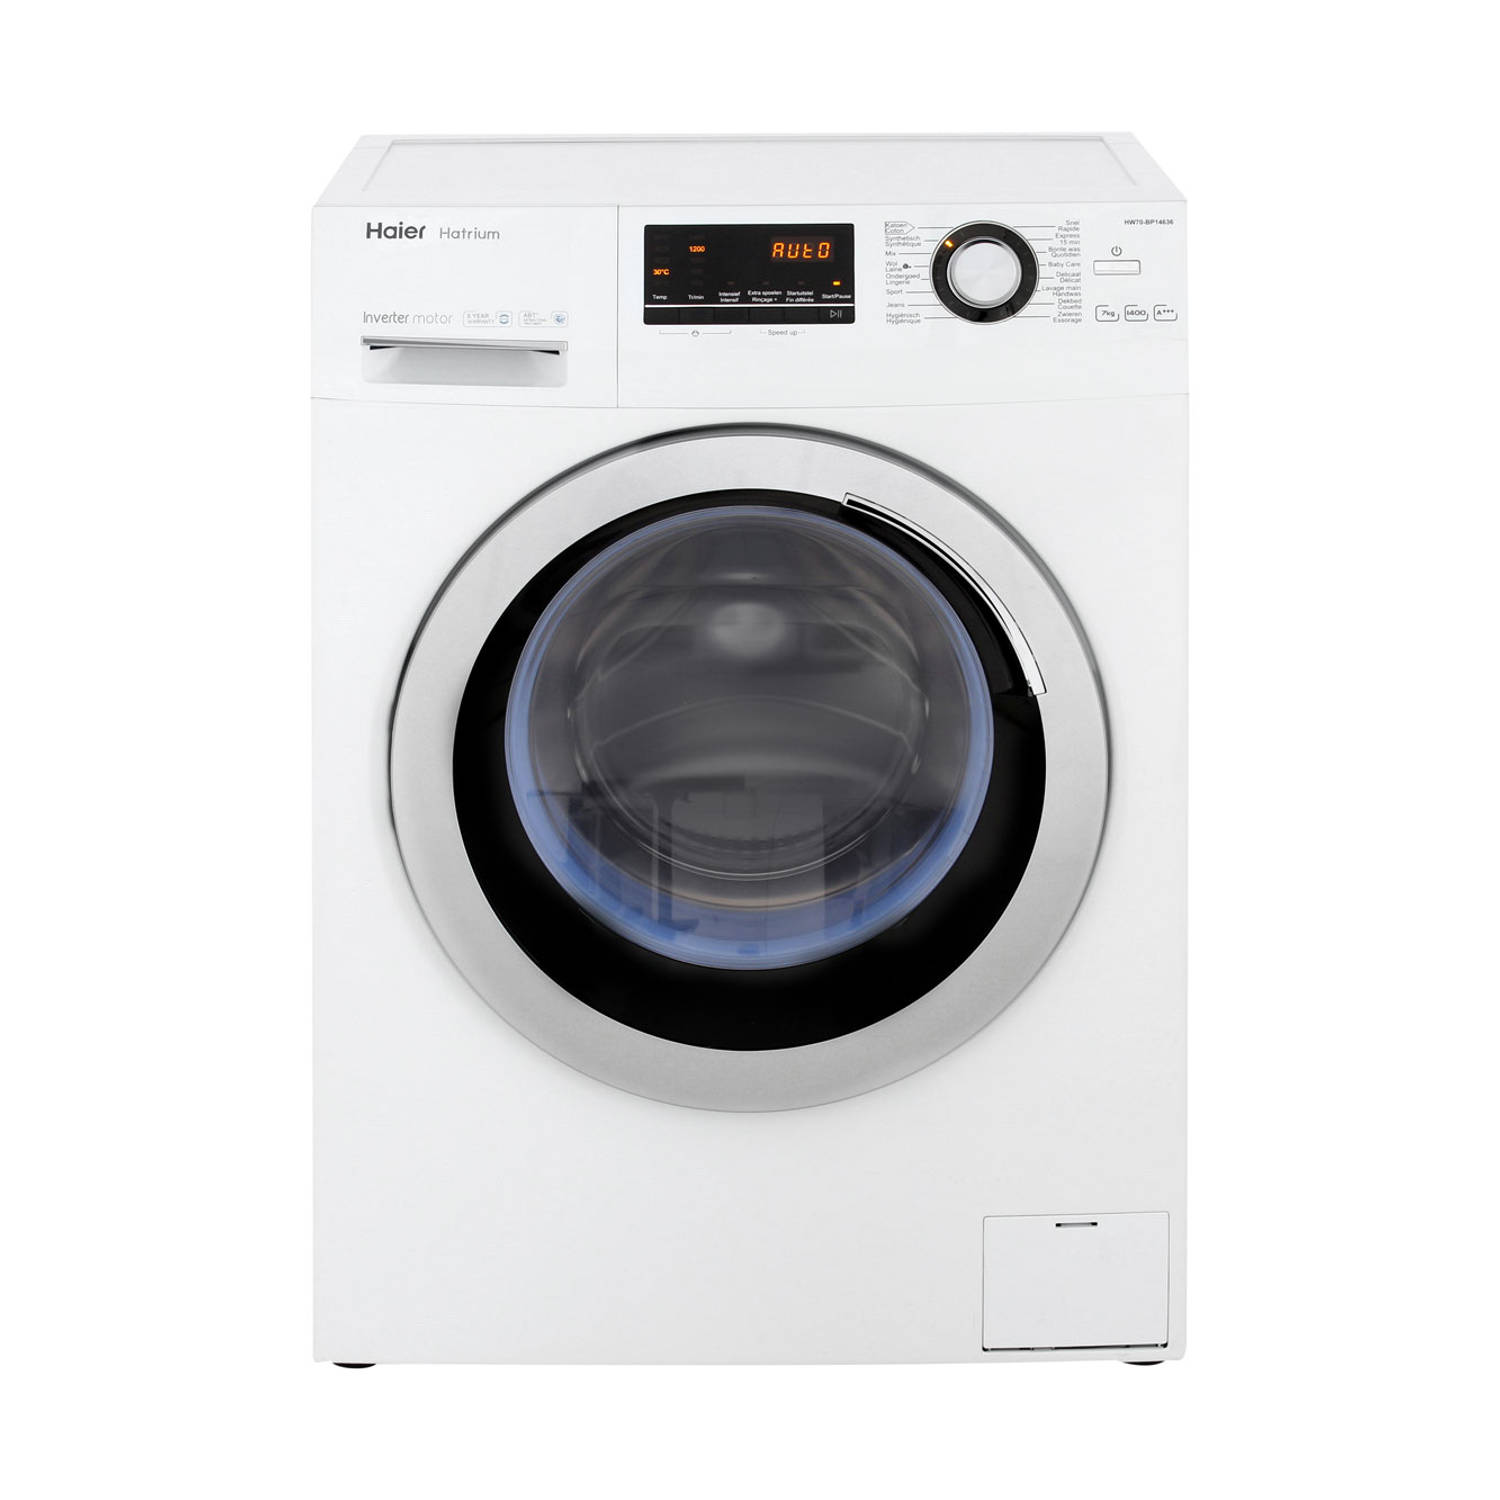 Haier HW70-BP14636 wasmachines - Wit